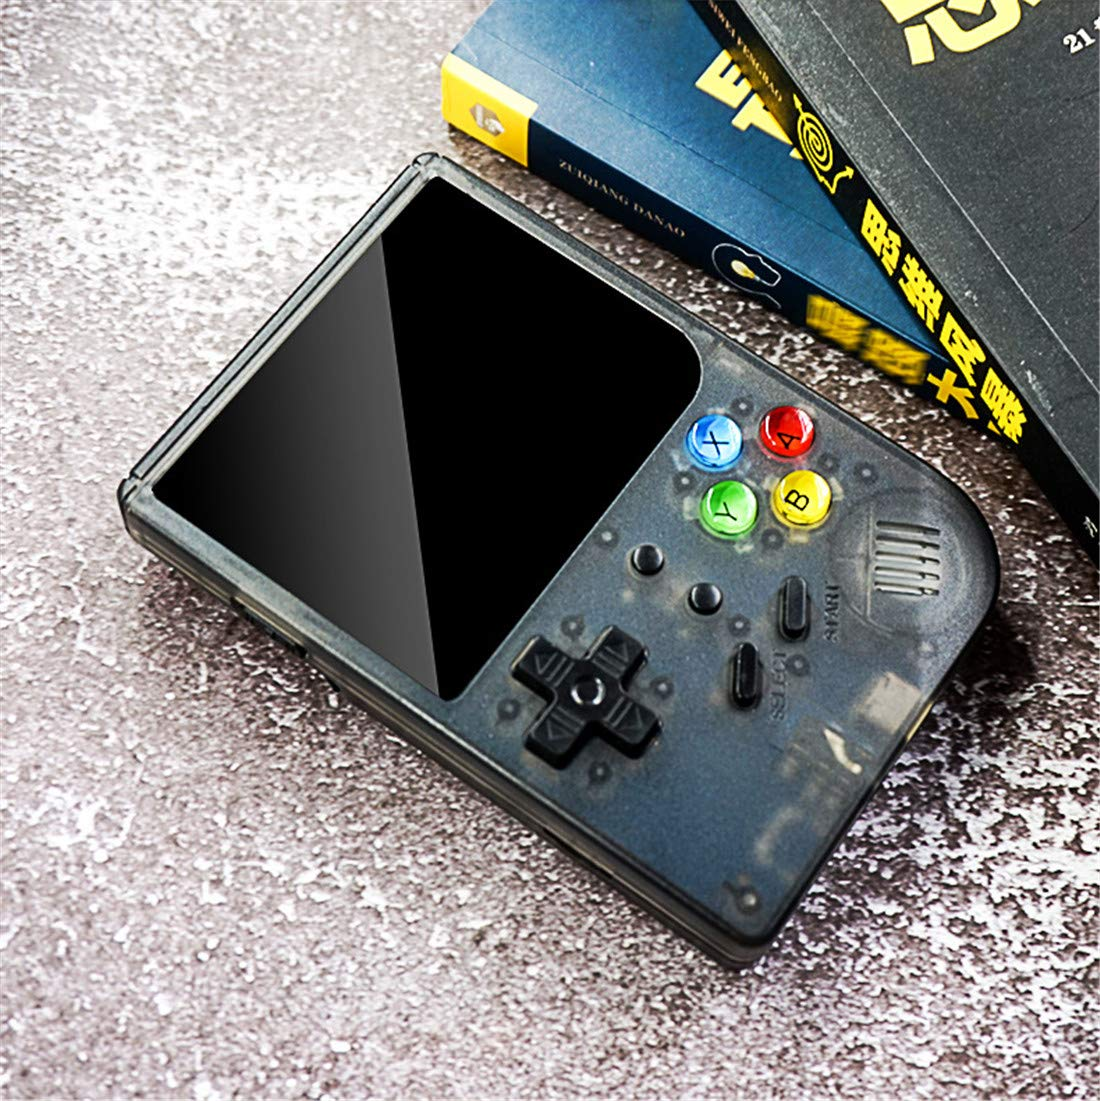 3 INCH Video Games Portable Retro FC Console New BittBoy Retro Game Handheld Games Console Player RG 300 16G 3000 Games Best Gift (Black) by Neutral (Image #9)